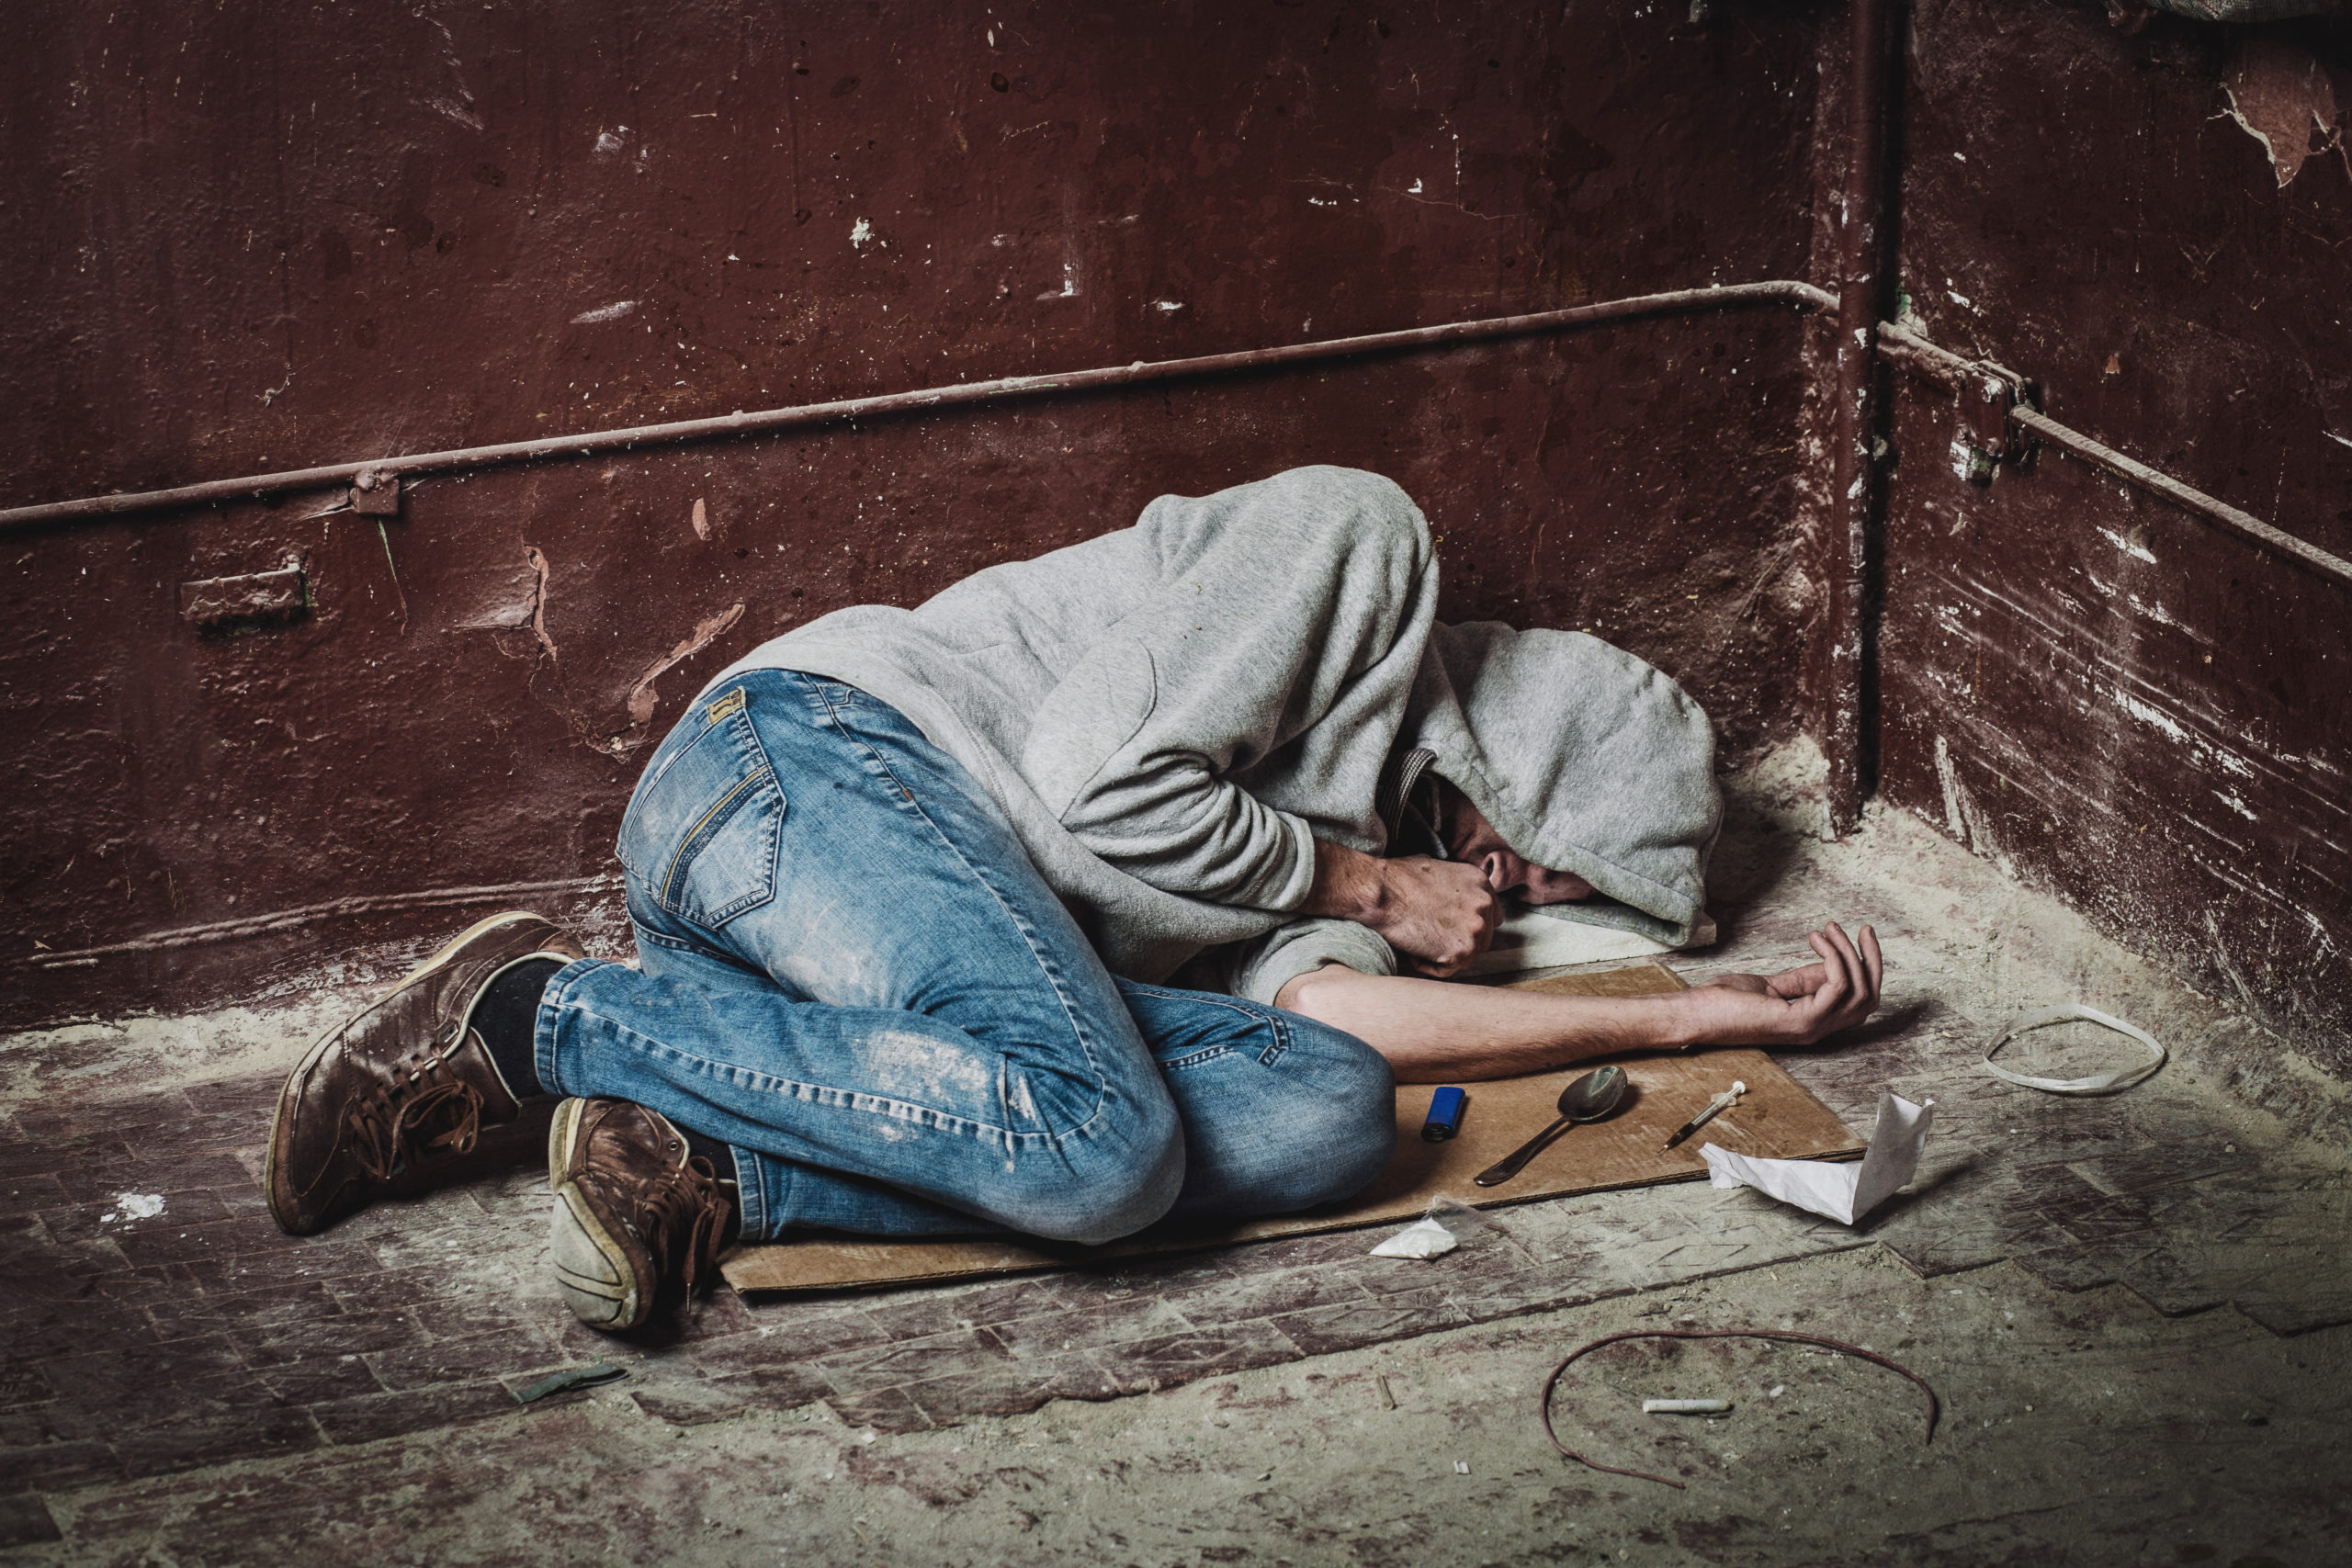 Thumb image for the post on Heroin Addiction Explained